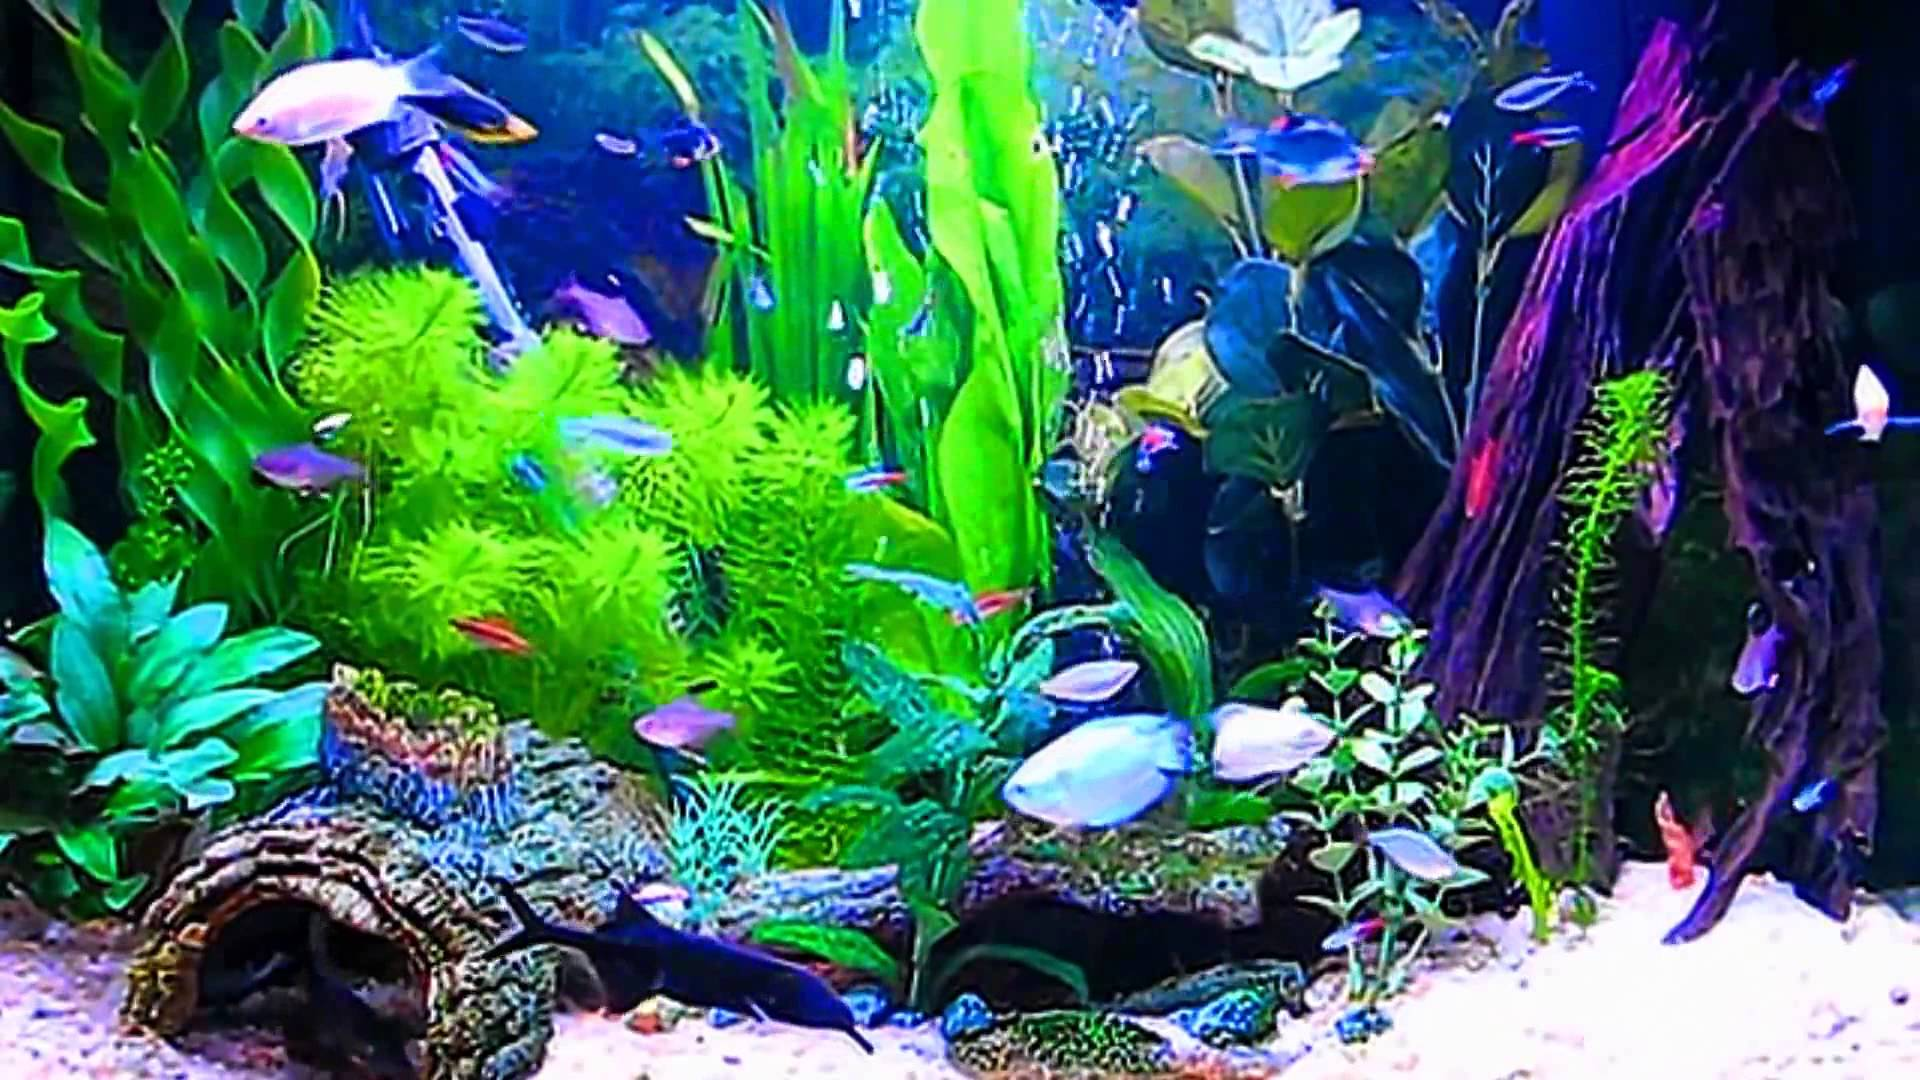 Awesome hd fish tank wallpapers wallpapersafari for Desktop fish tank